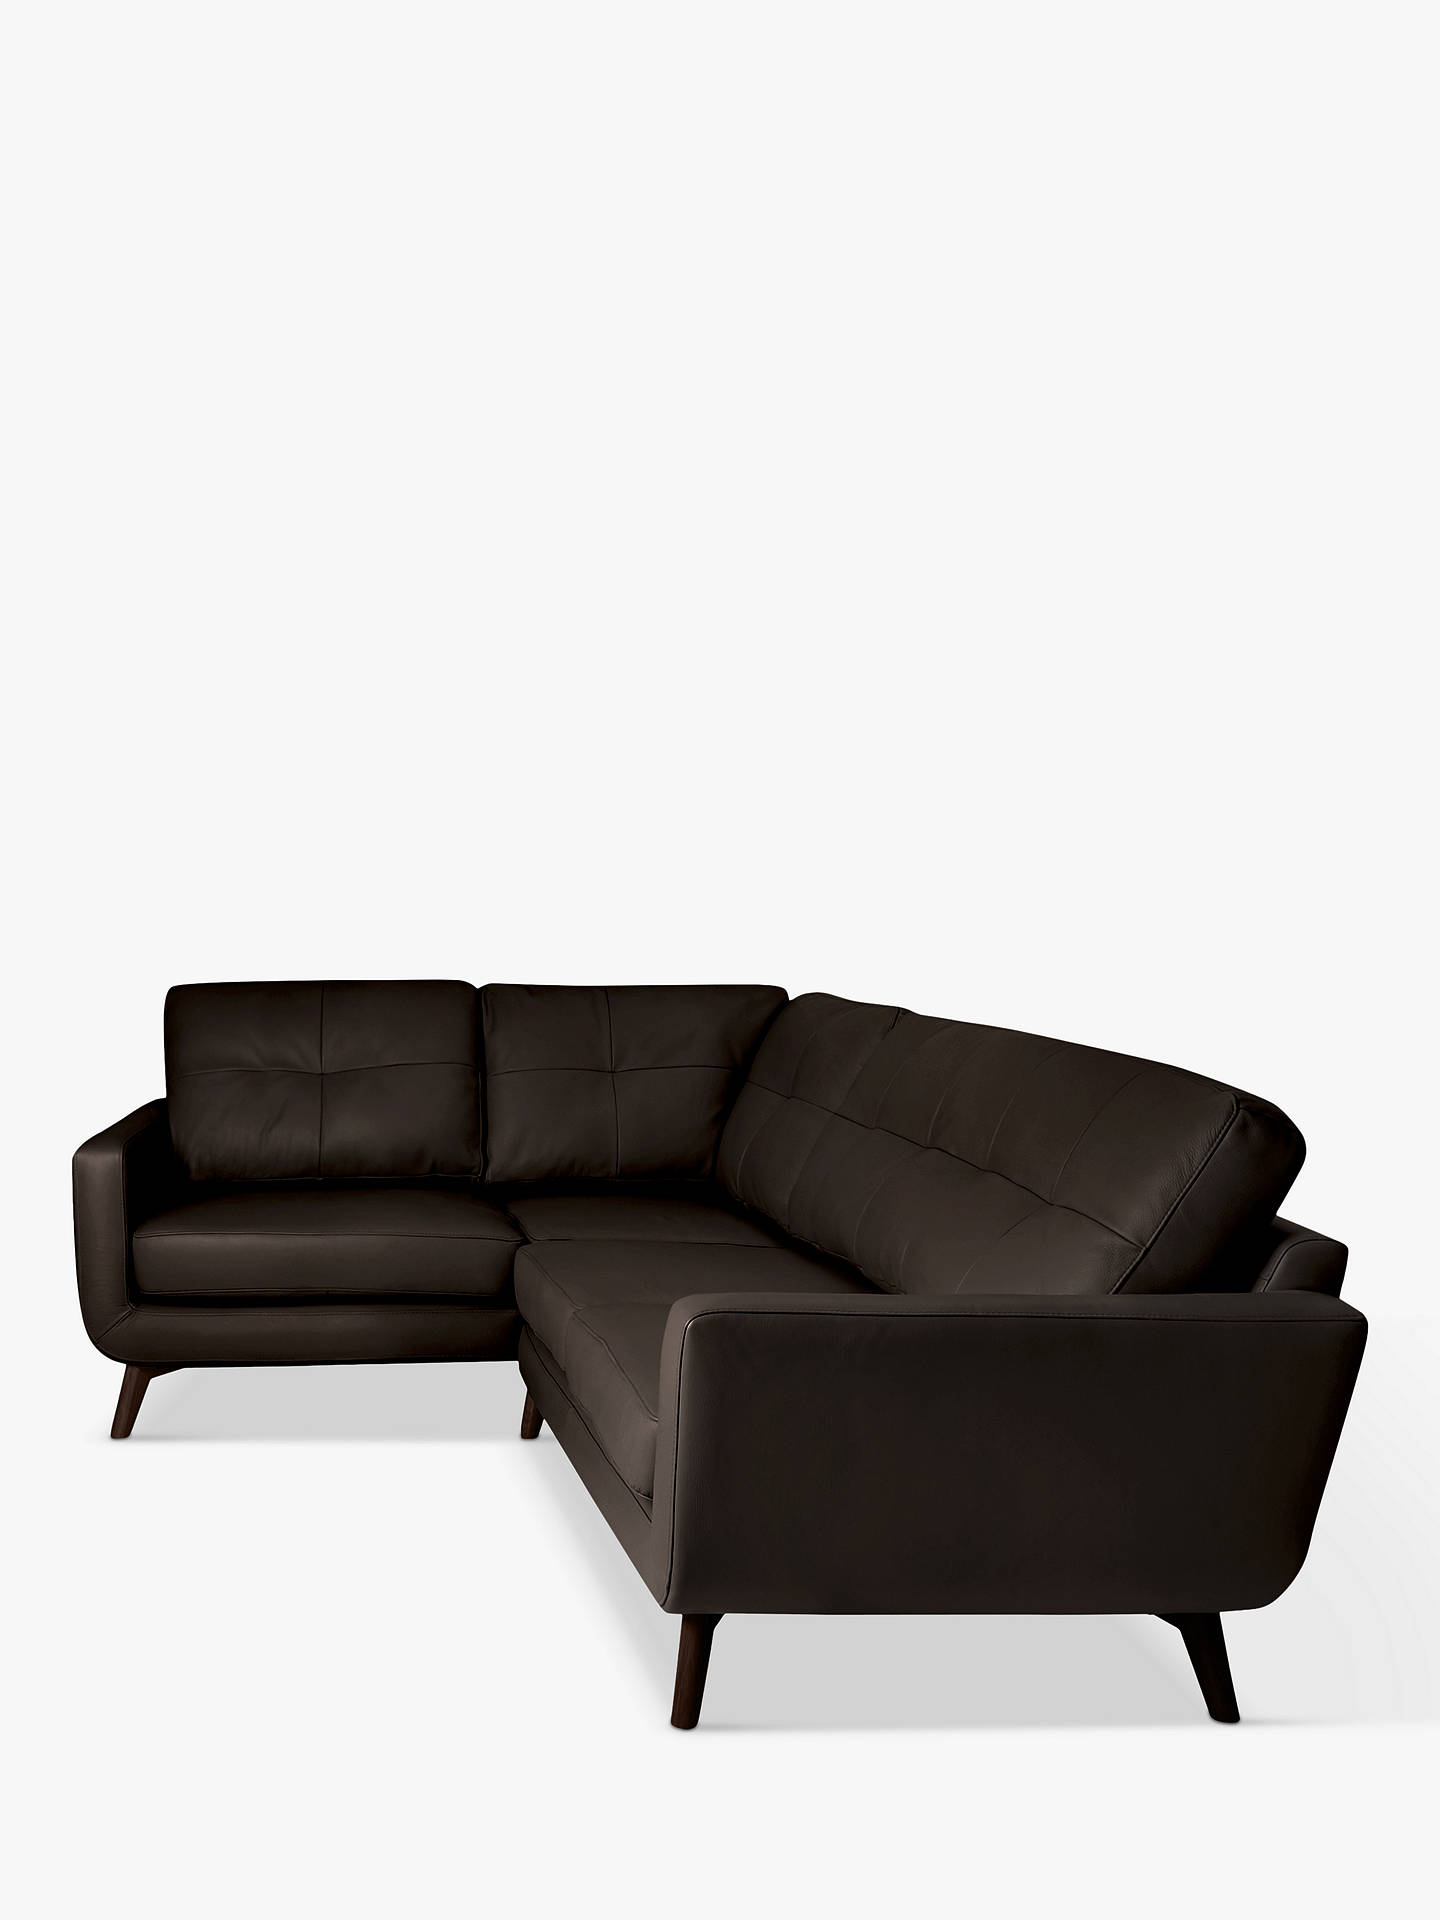 BuyJohn Lewis & Partners Barbican Leather LHF Corner End Sofa, Dark Leg, Contempo Dark Chocolate Online at johnlewis.com